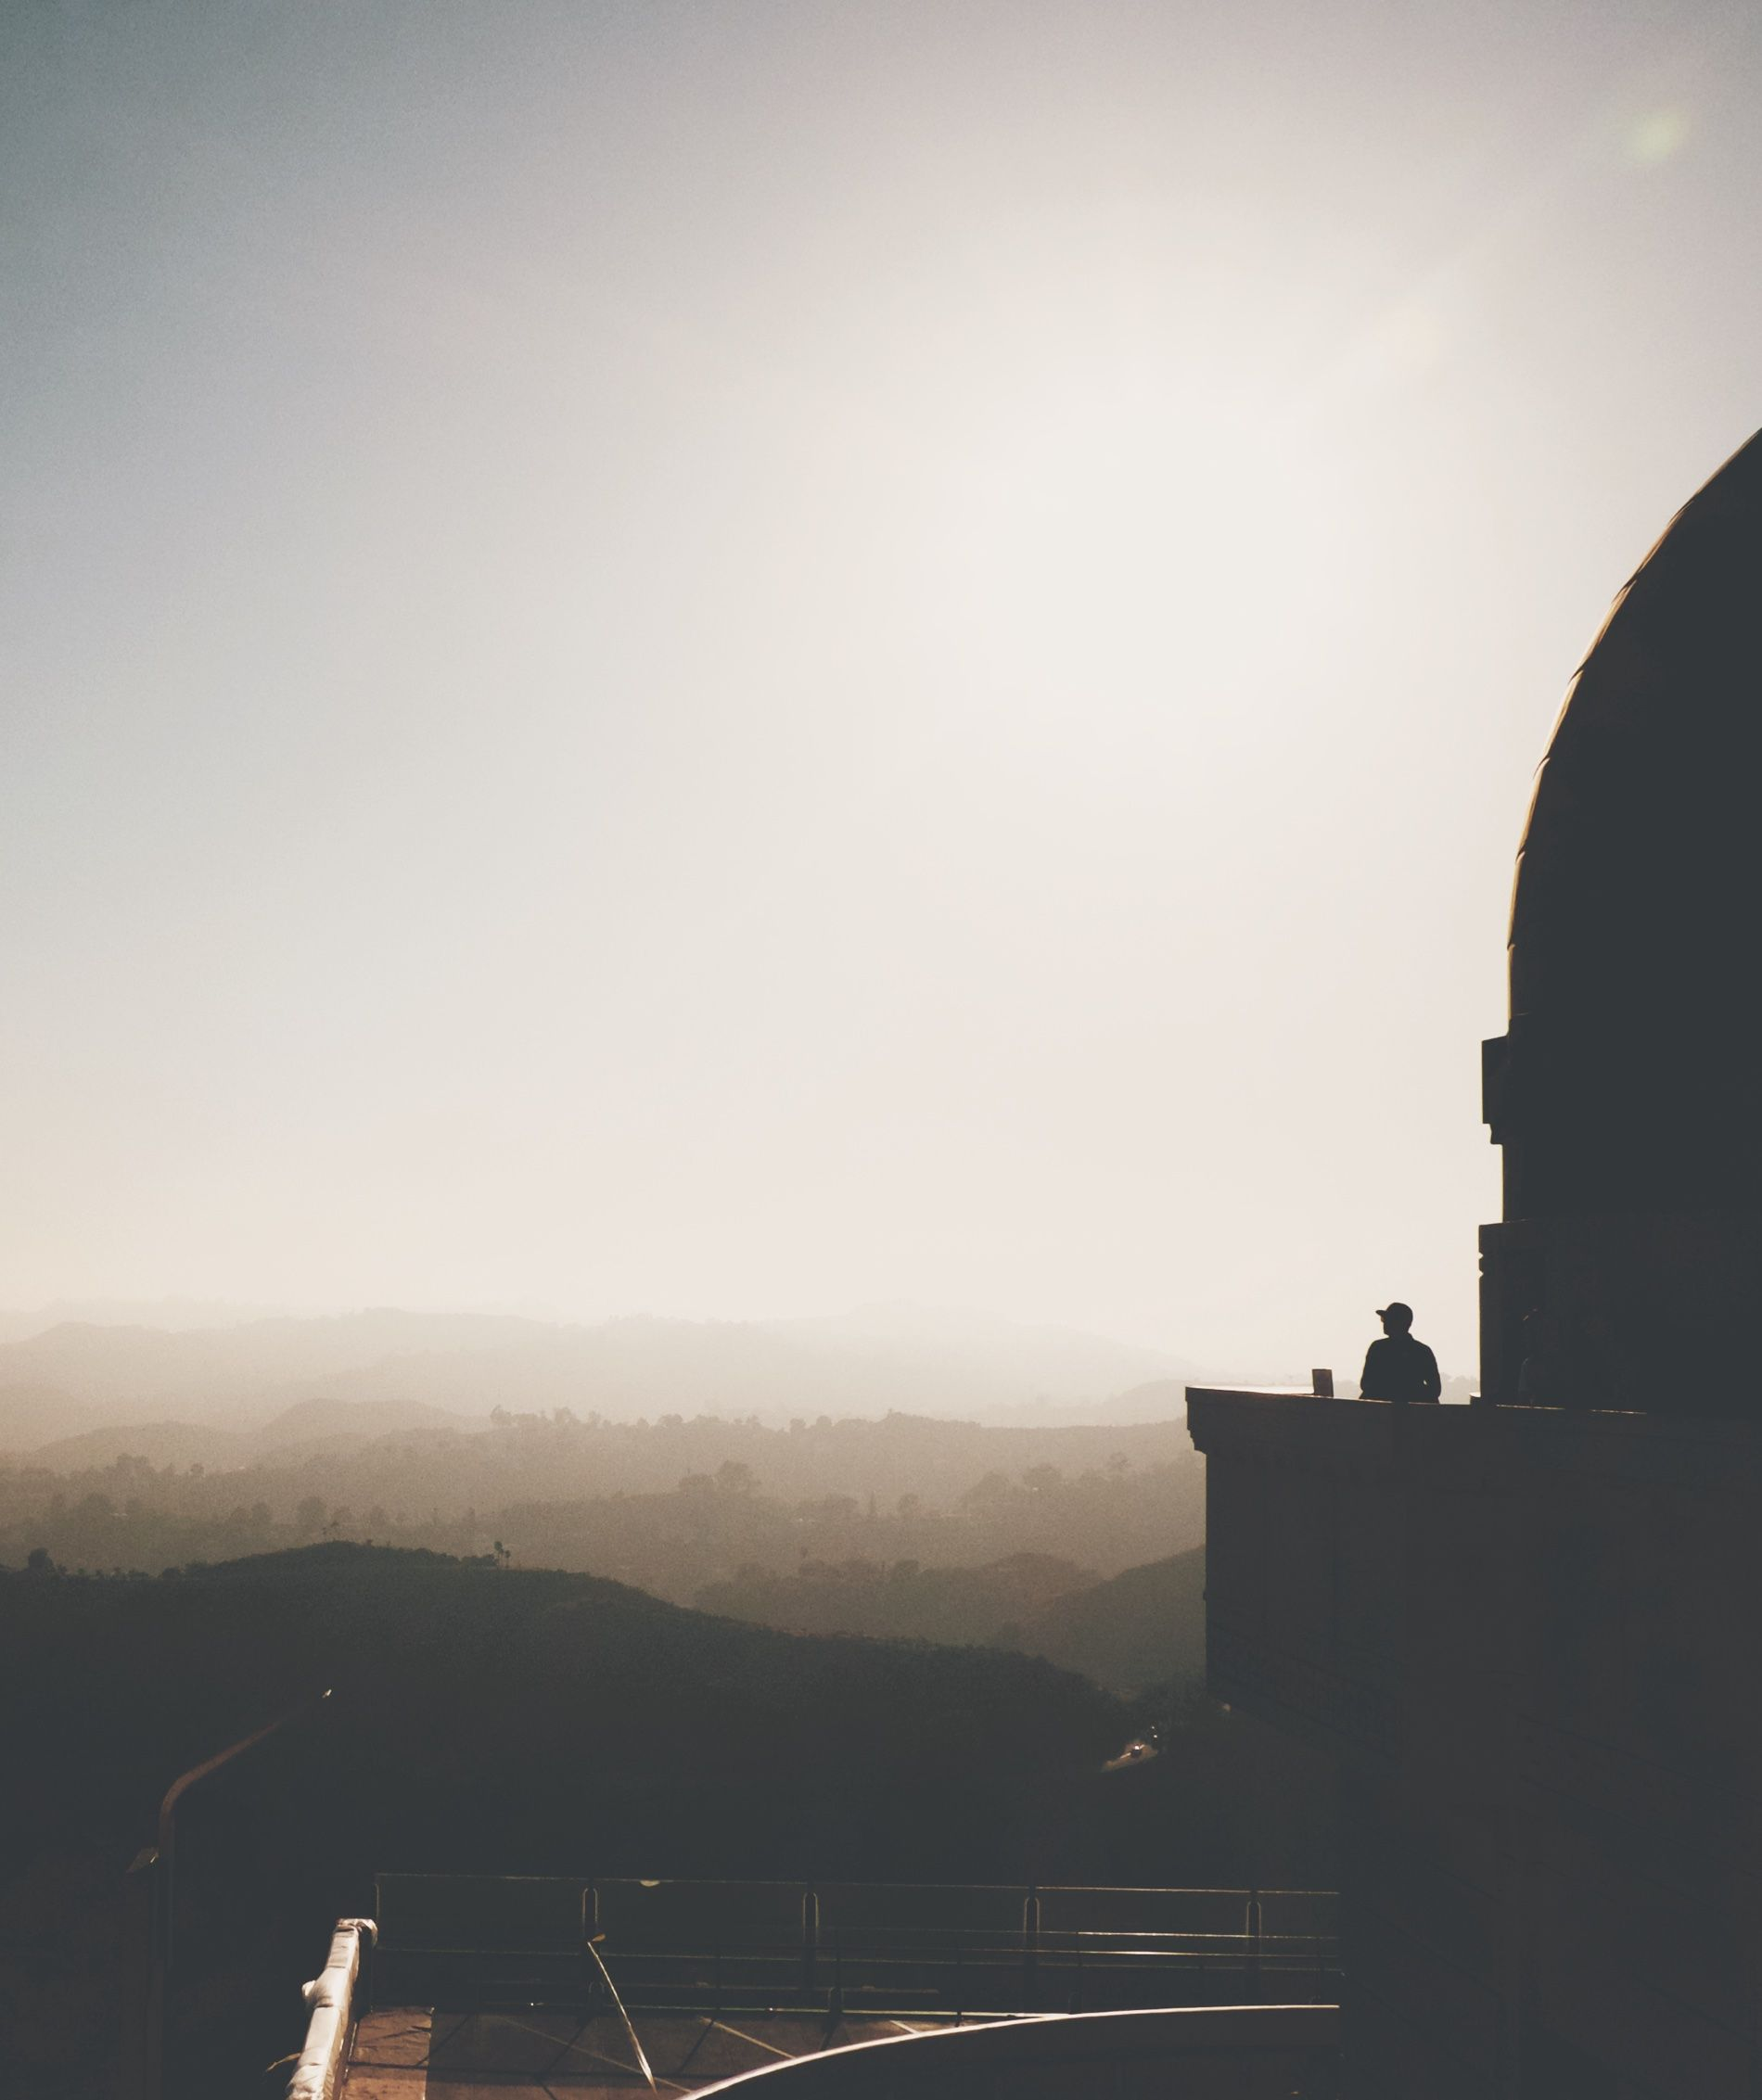 Silouetted person looking out from an observatory across a hazy city with rolling hills.